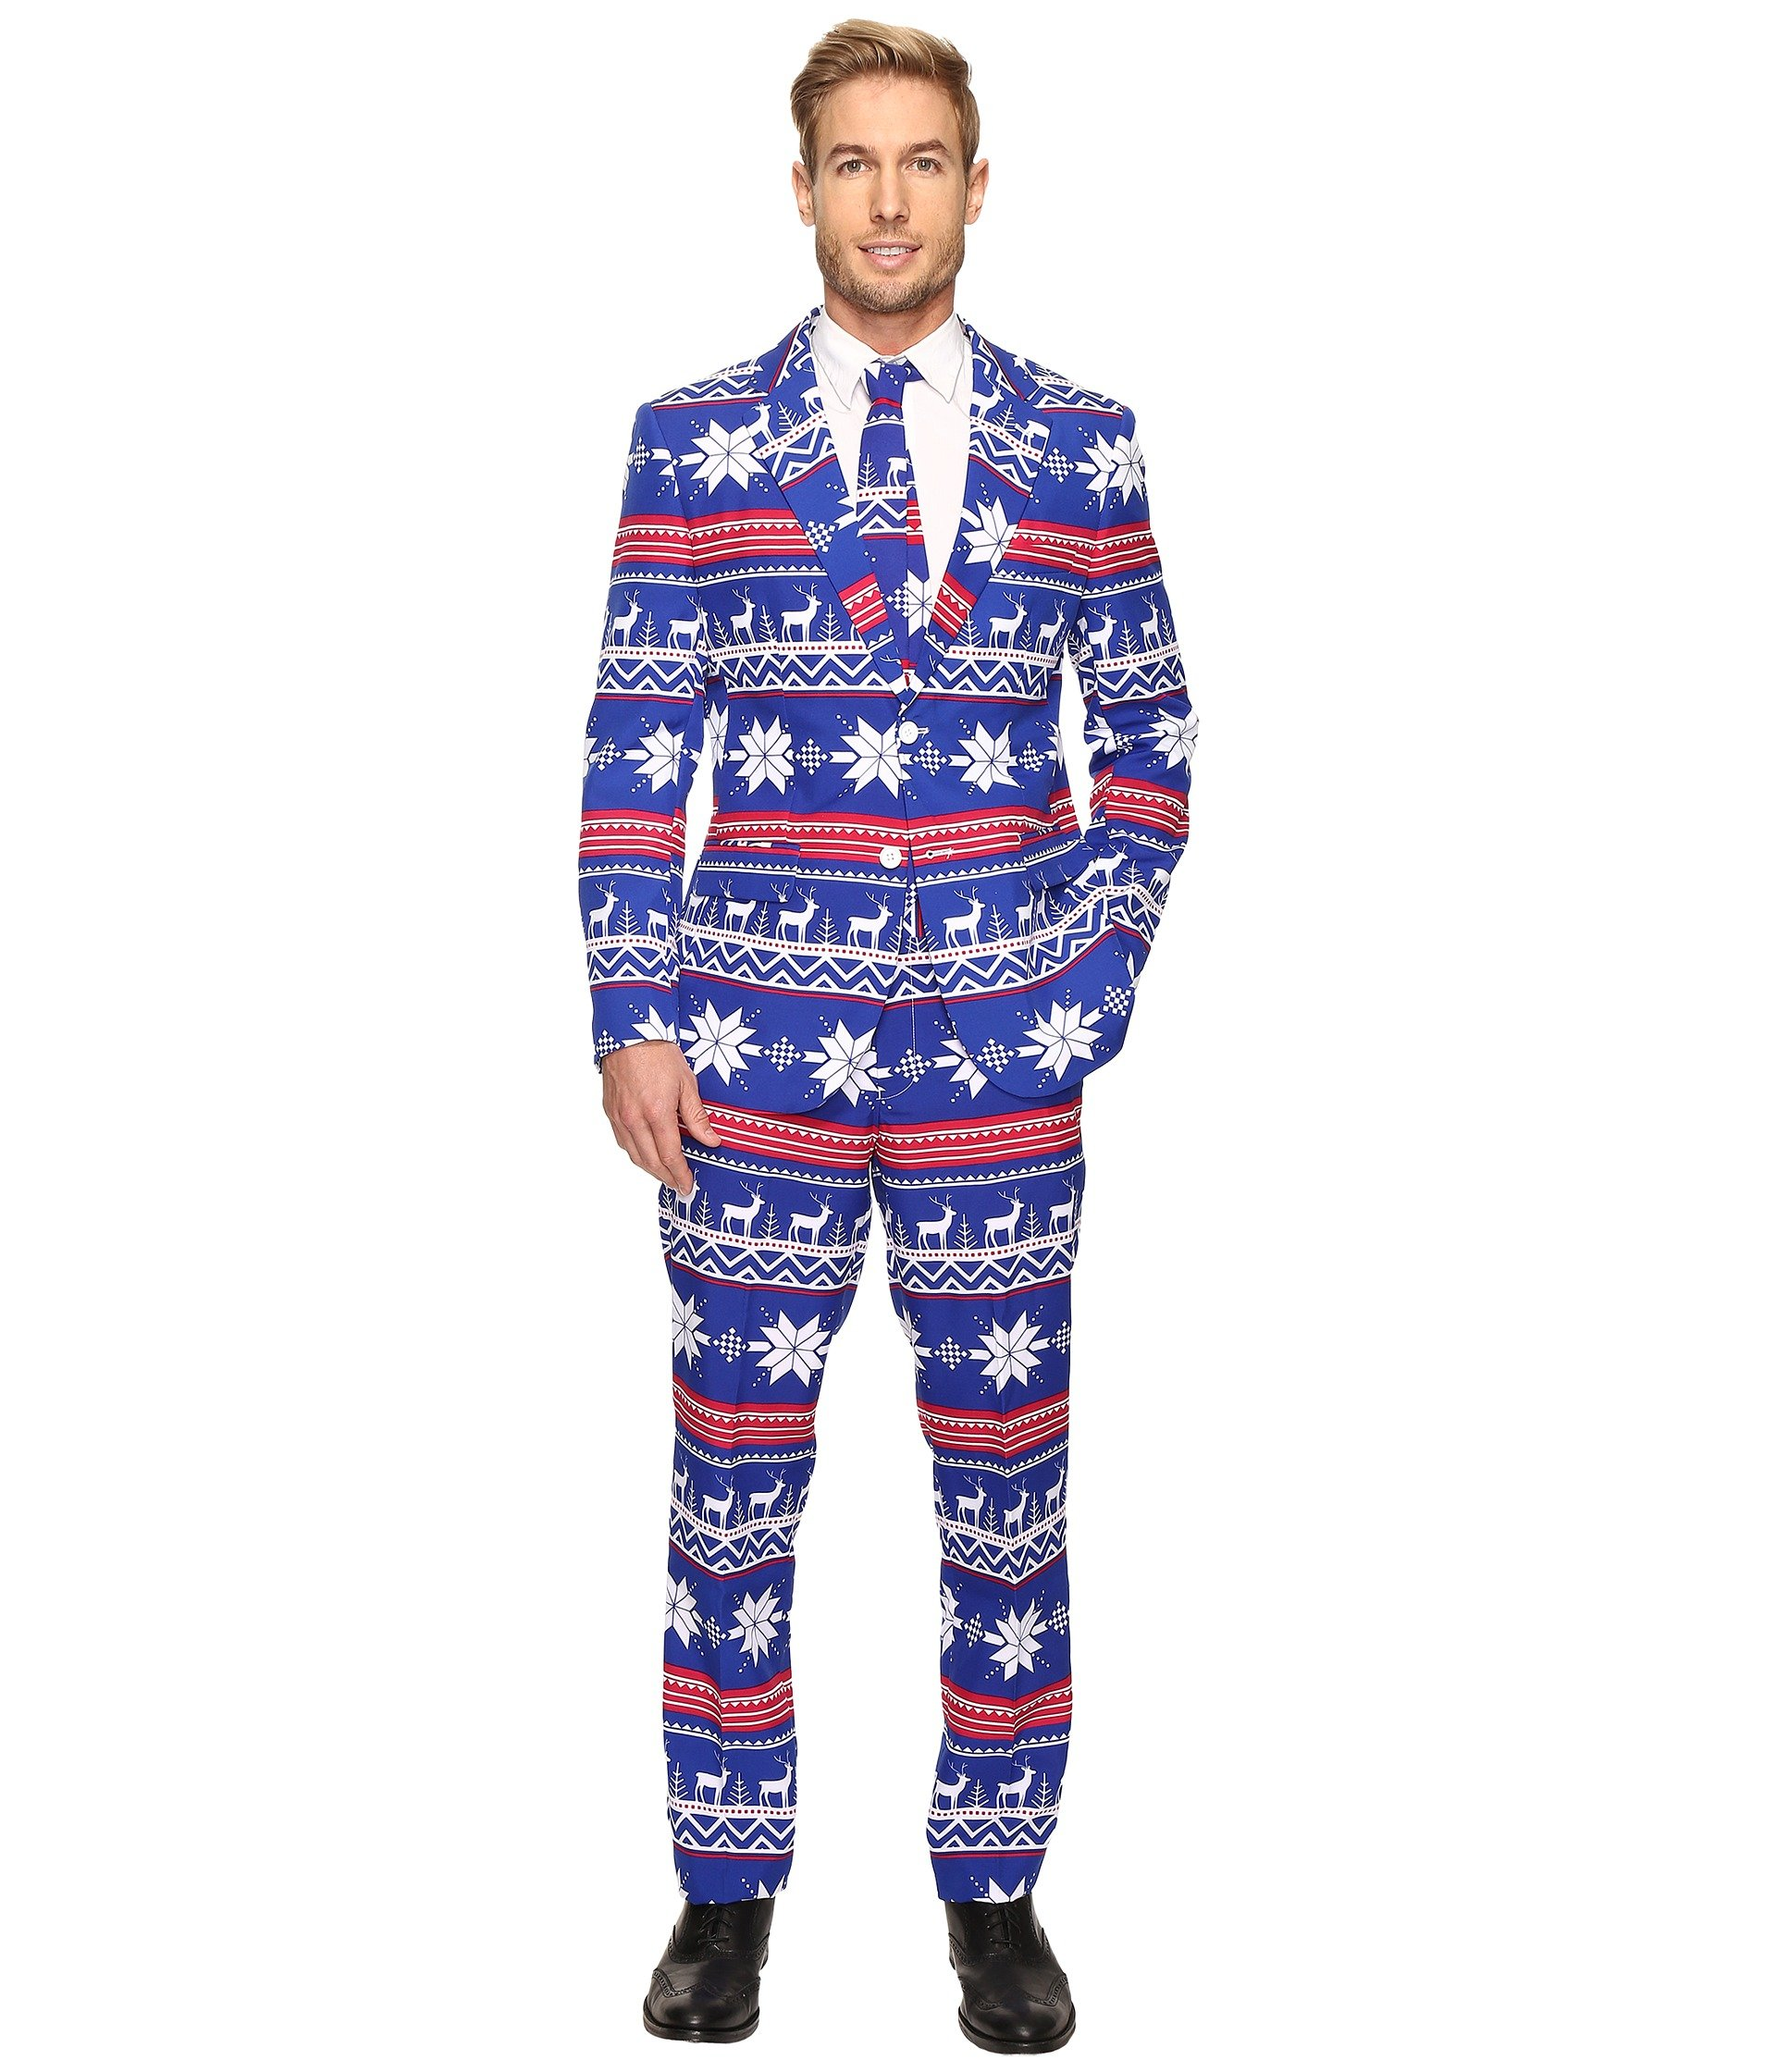 Vestido para Hombre OppoSuits The Rudolph Suit  + OppoSuits en VeoyCompro.net